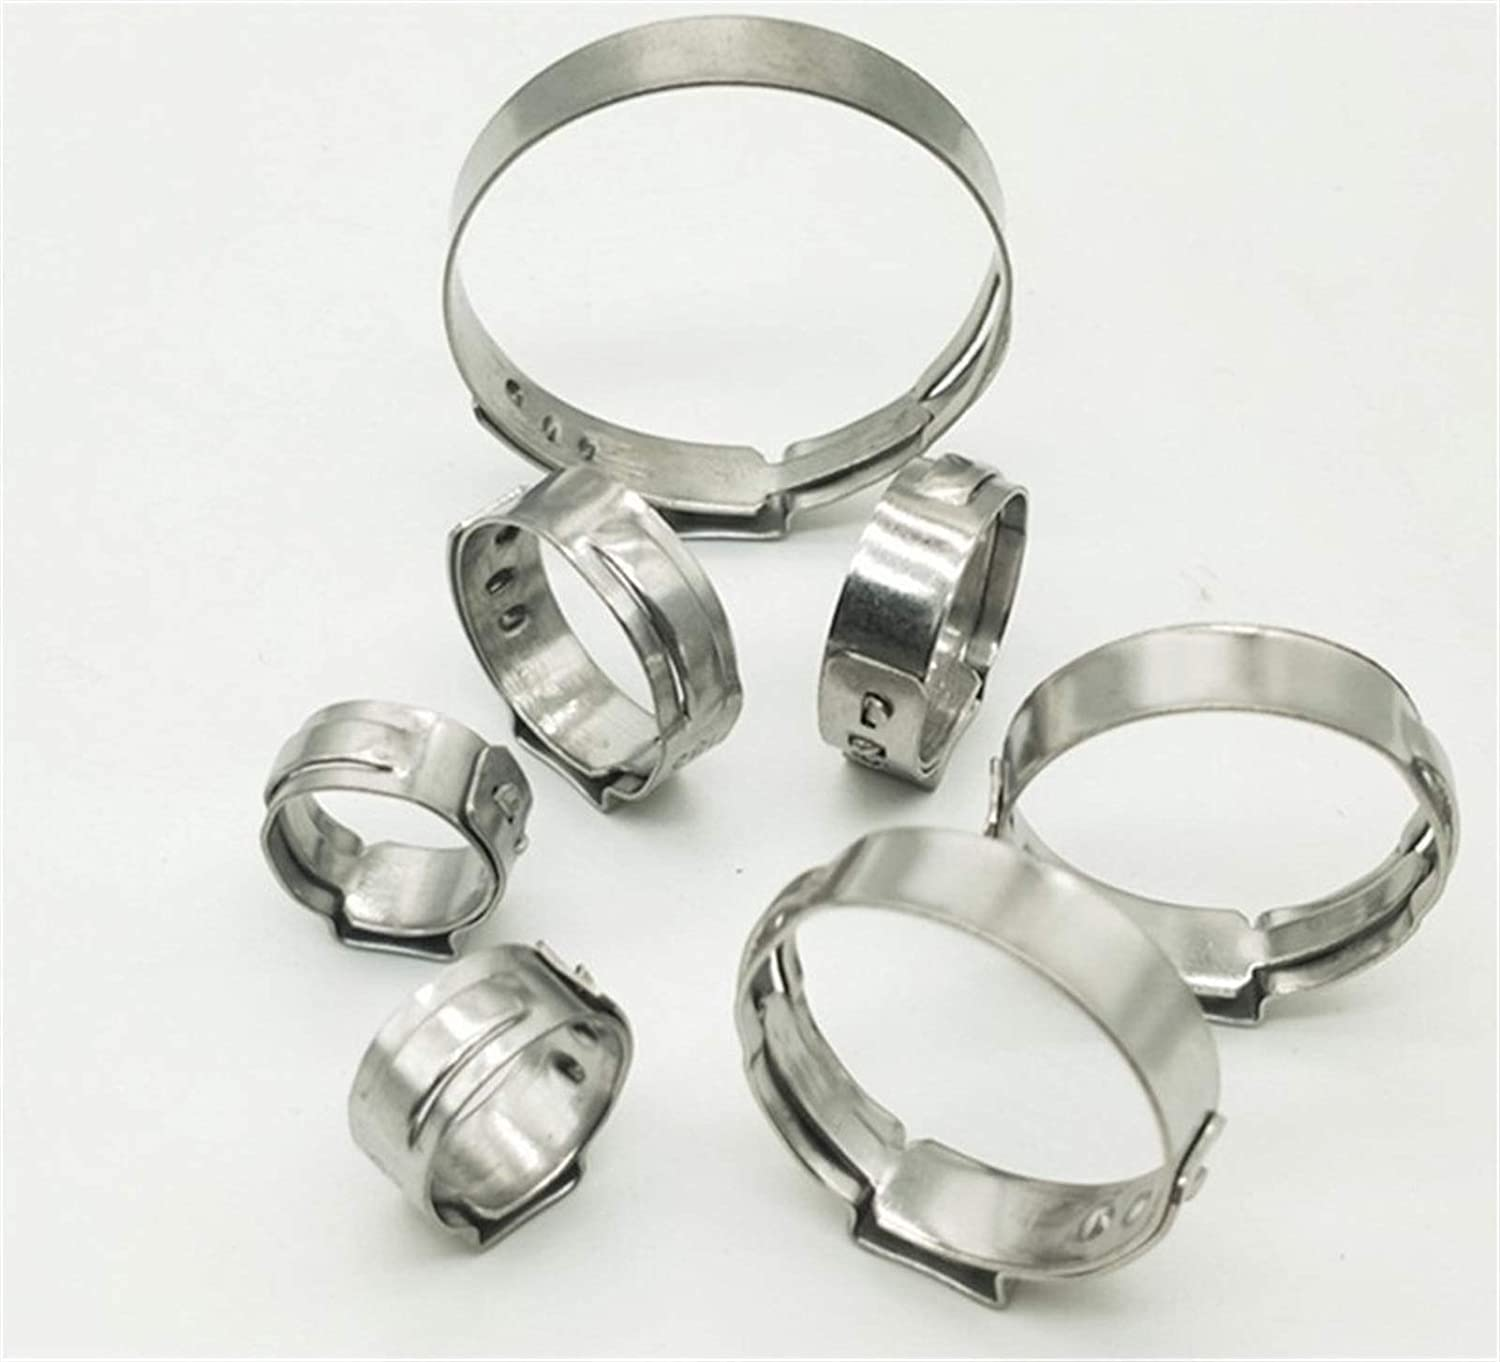 Pipe Tube Many popular brands Clips Big Size Al sold out. for Choose Stainless 10PCS Clamp